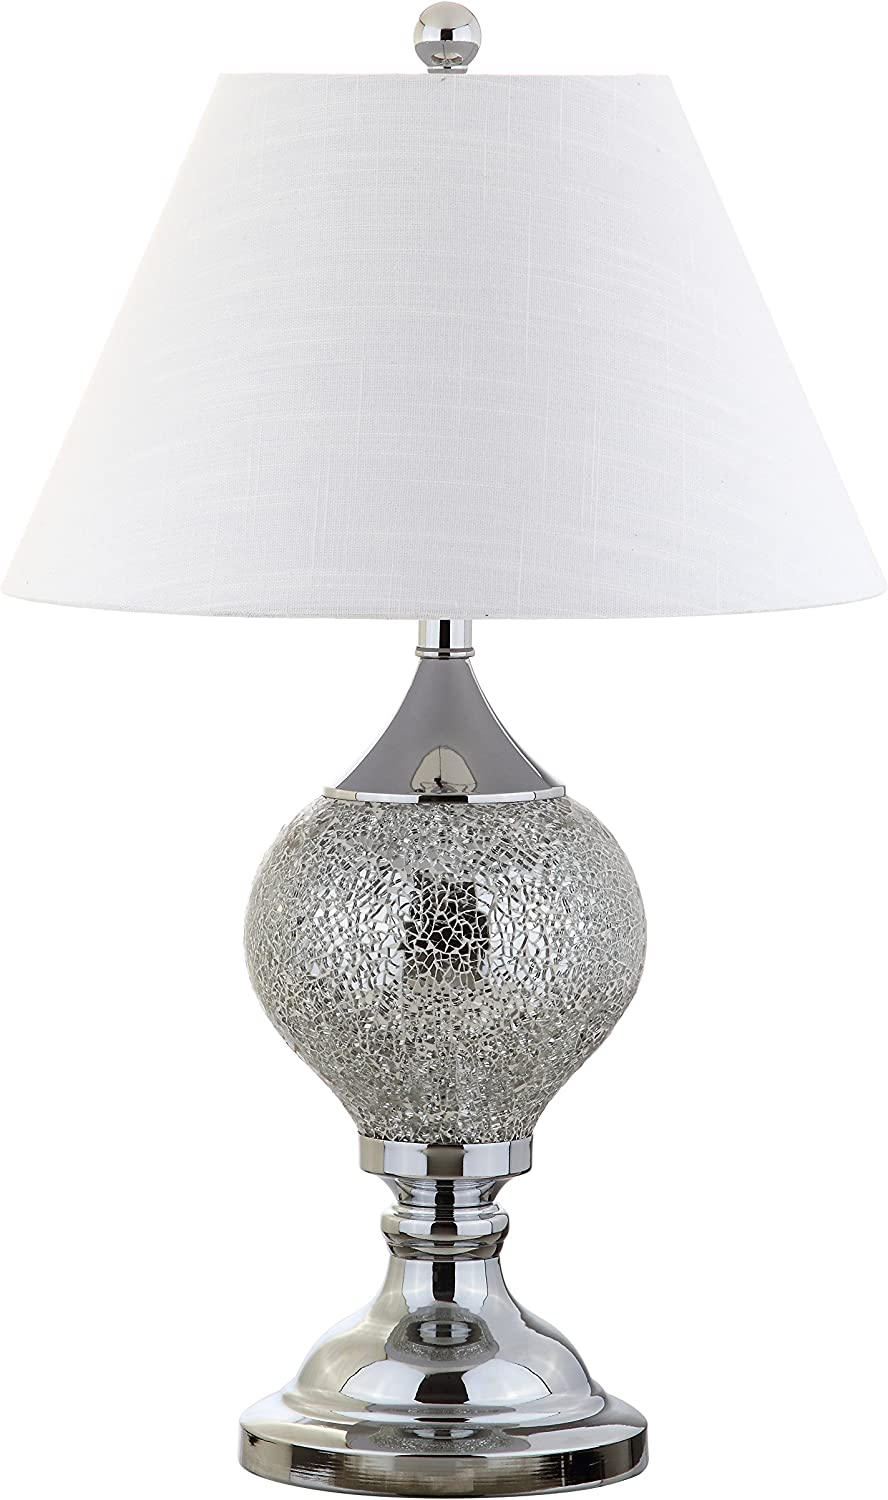 Jonathan Y JYL4008A Table Lamp, 16  x 27  x 16 , Silver Chrome with White Shade